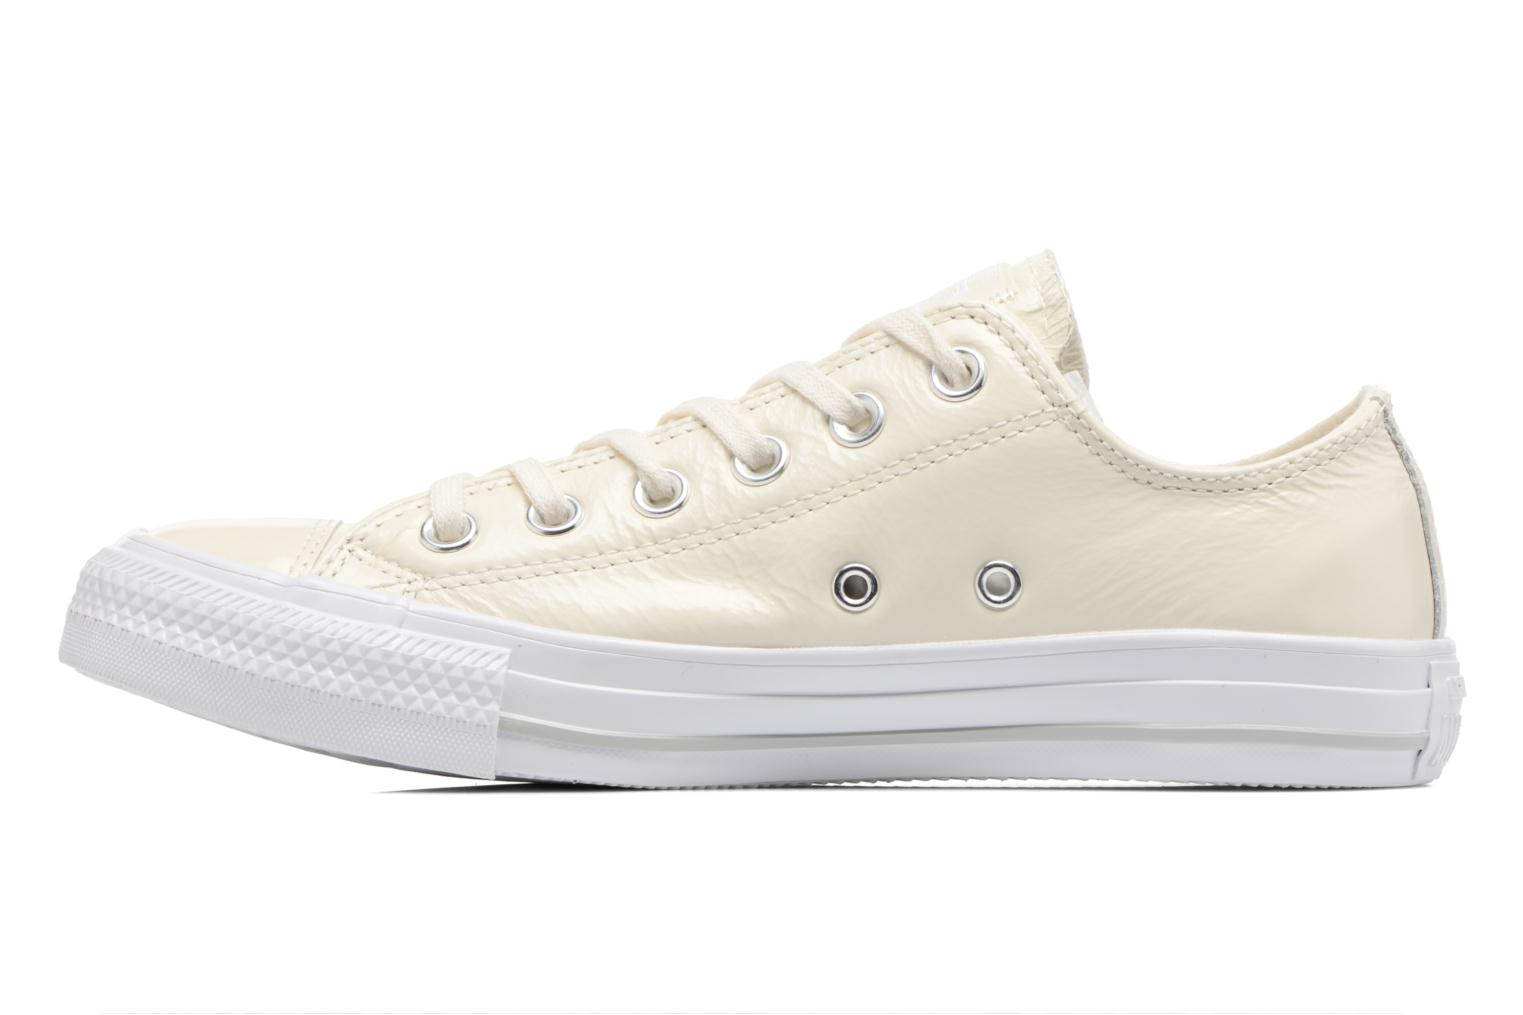 Promocionales Patent Zapatos Crinkled Star Converse All Chuck Taylor q54ALRj3